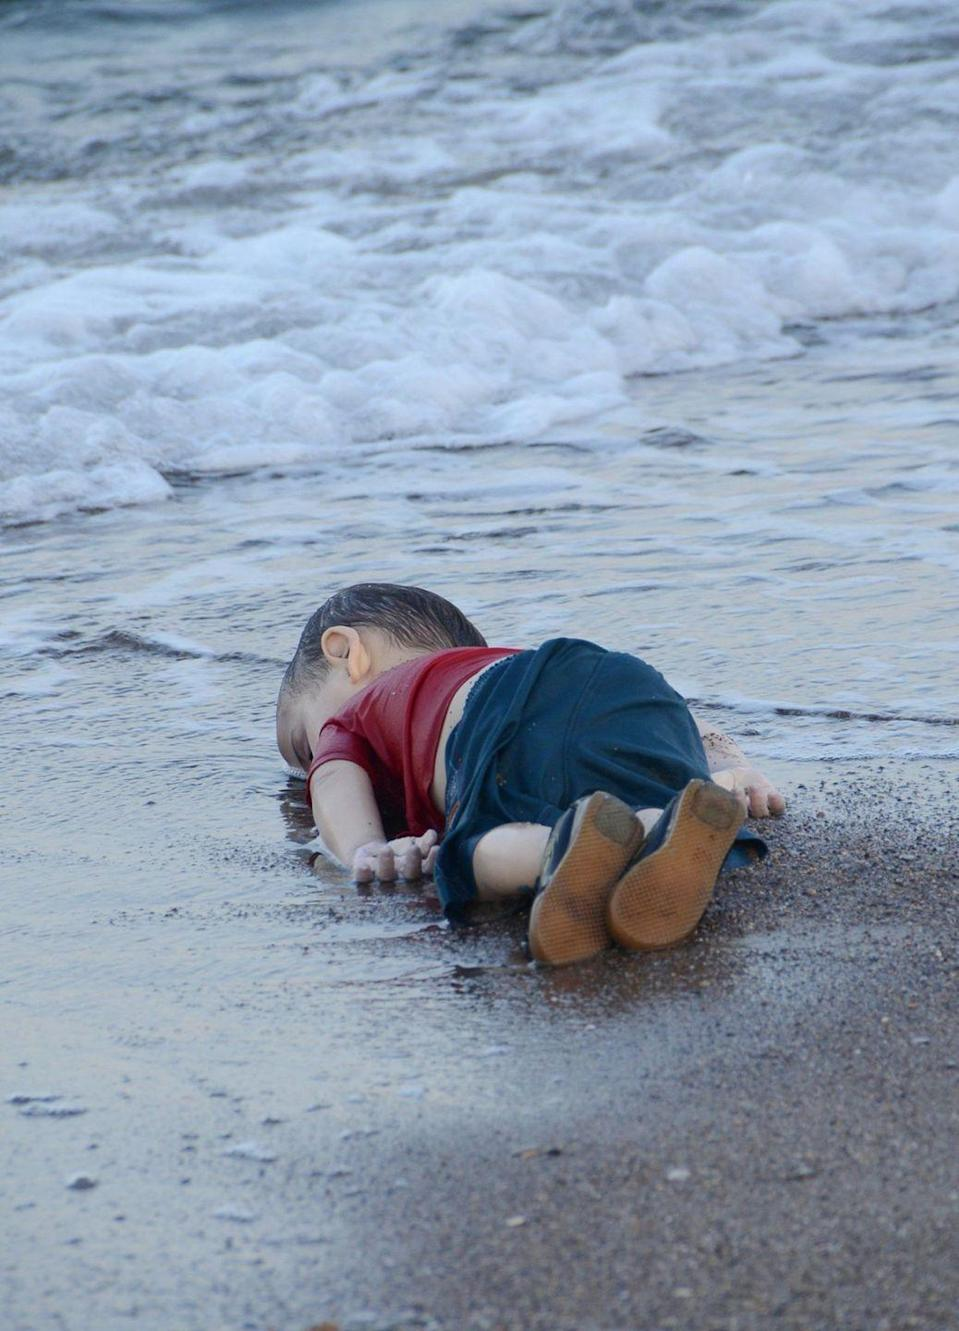 <p>2015. Three-year-old Syrian refugee Alan Kurdi drowned when his family's inflatable boat capsized as they tried to reach the Greek island of Kos.</p>